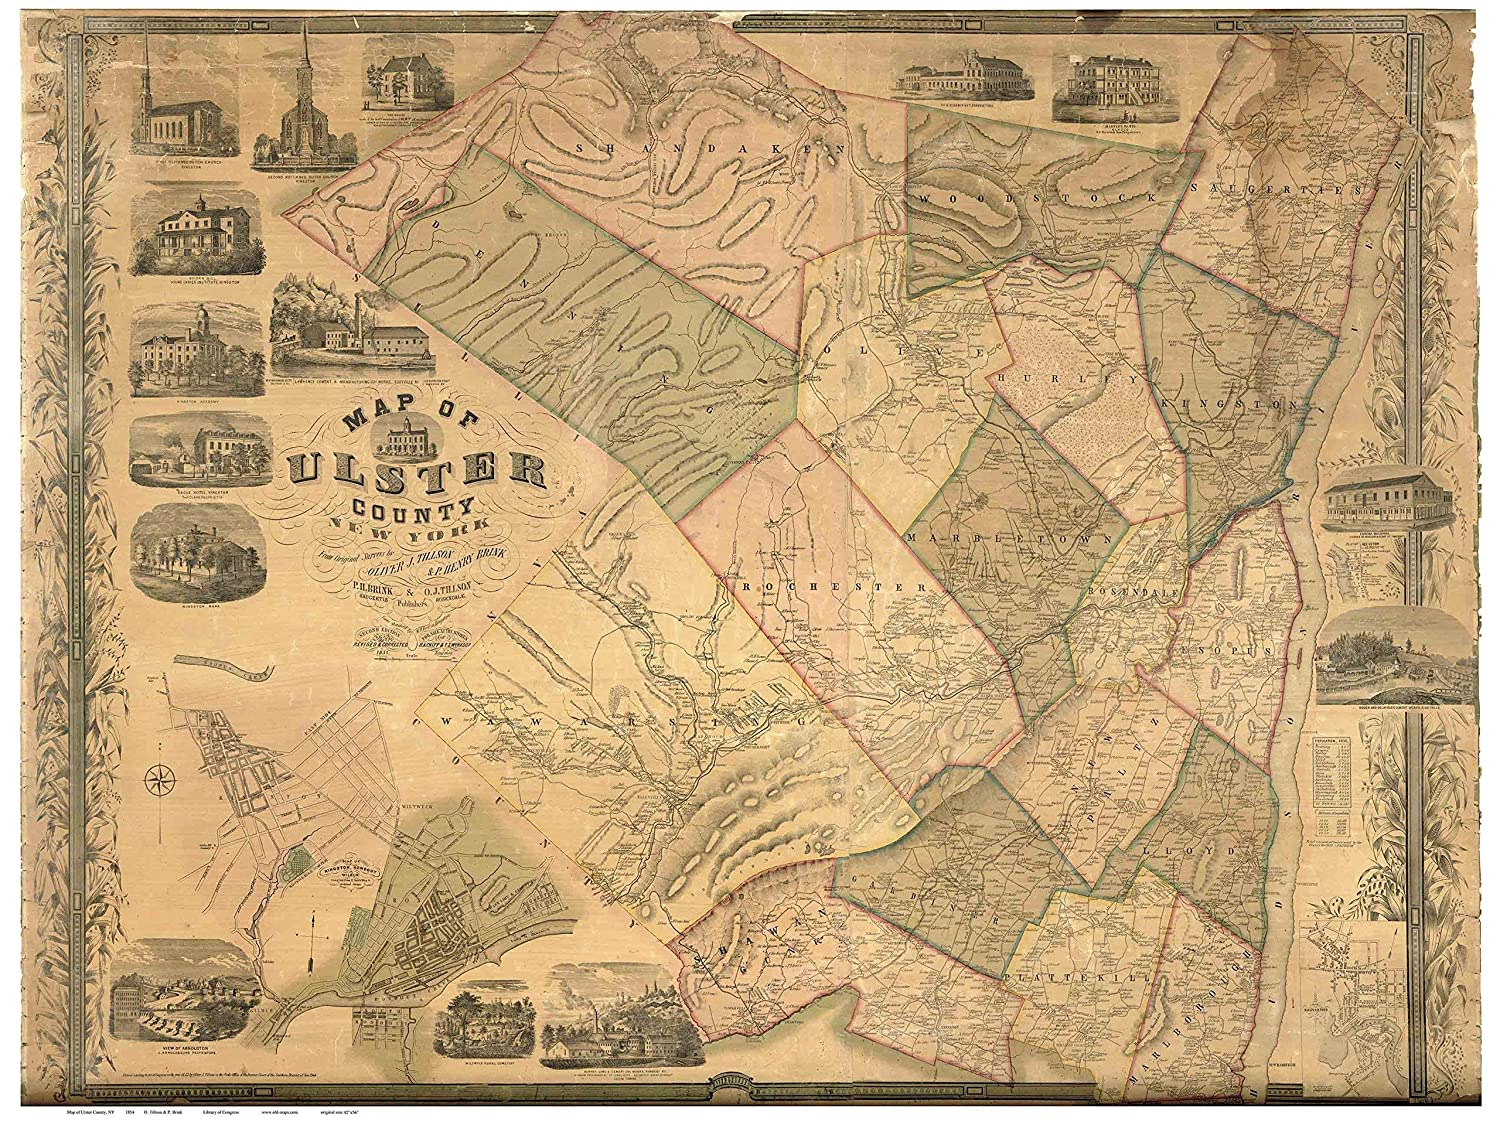 Old Map Of New York.Ulster County New York 1854 Wall Map With Homeowner Names Old Map Reprint